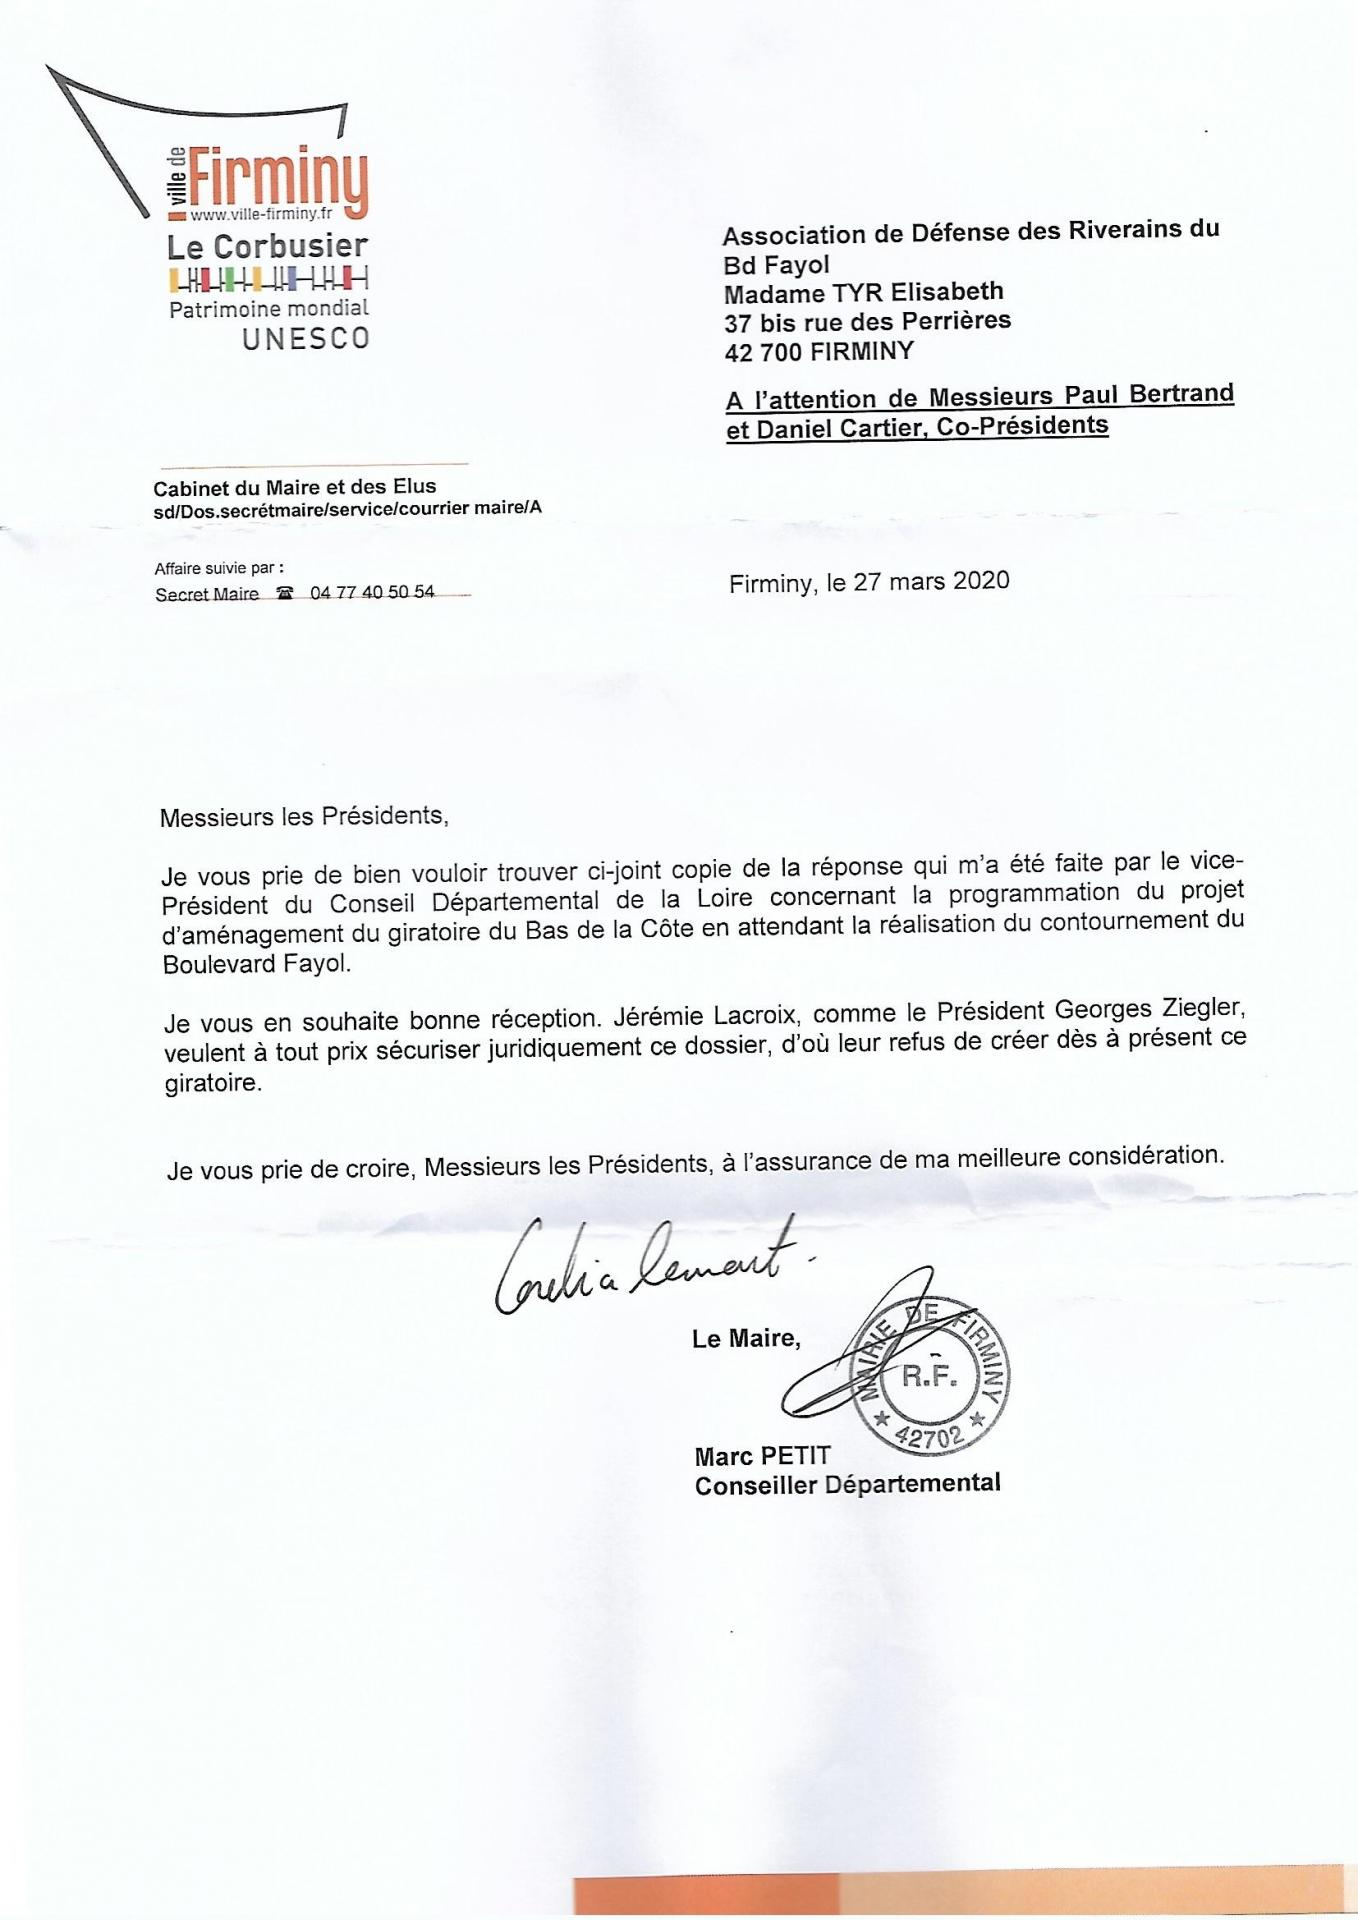 Courrier de mr le maire 27 03 2020 0001